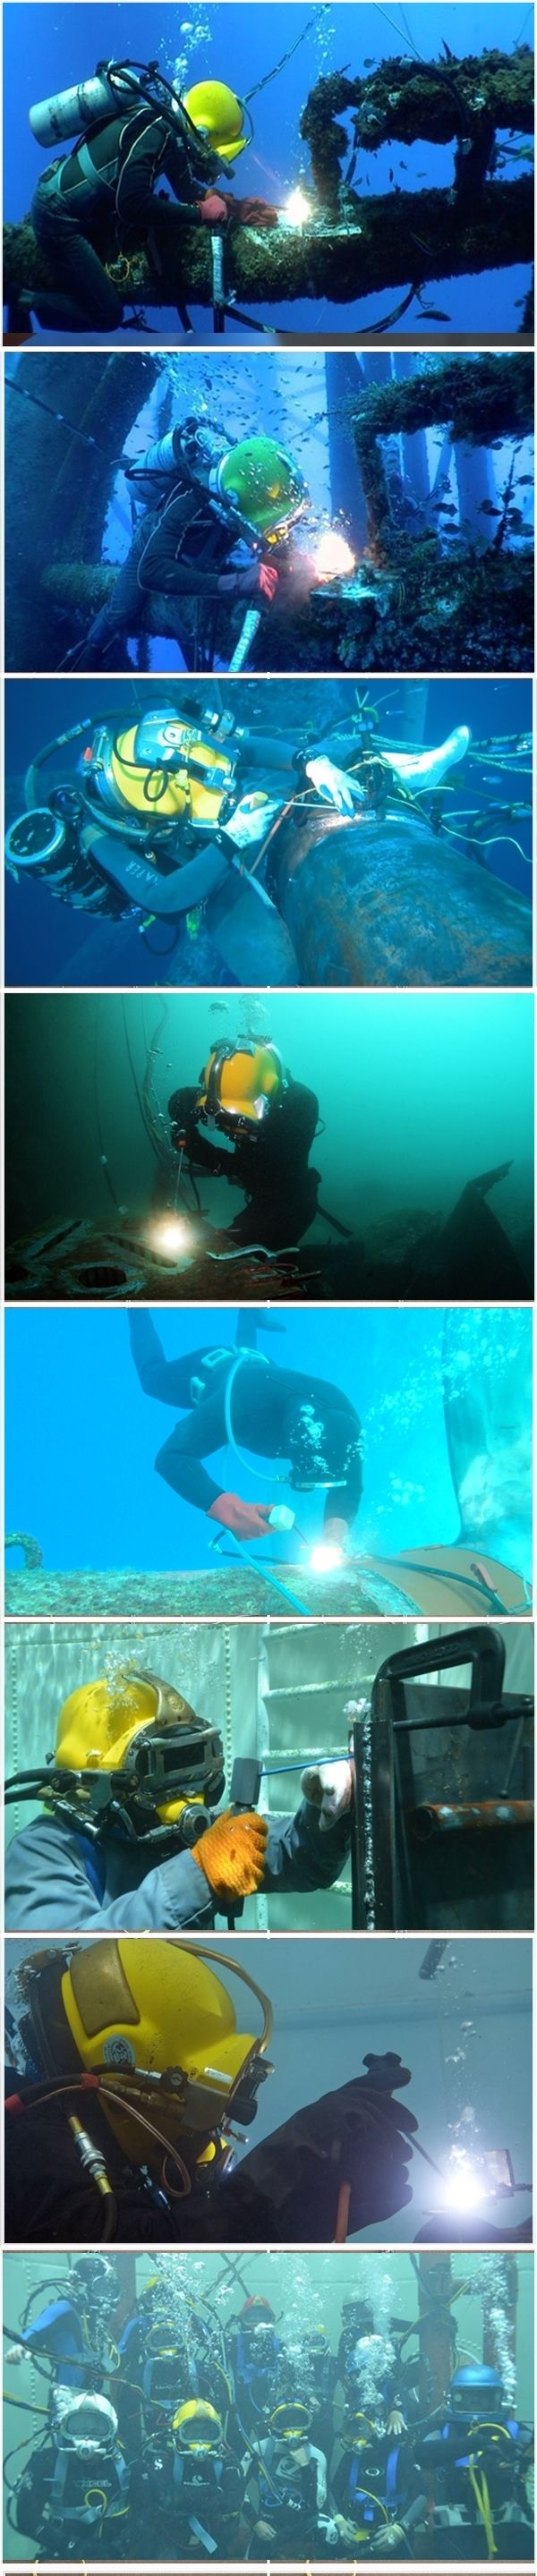 Underwater wet welding - Making welds inside water. Best picture compilation for scuba welding.